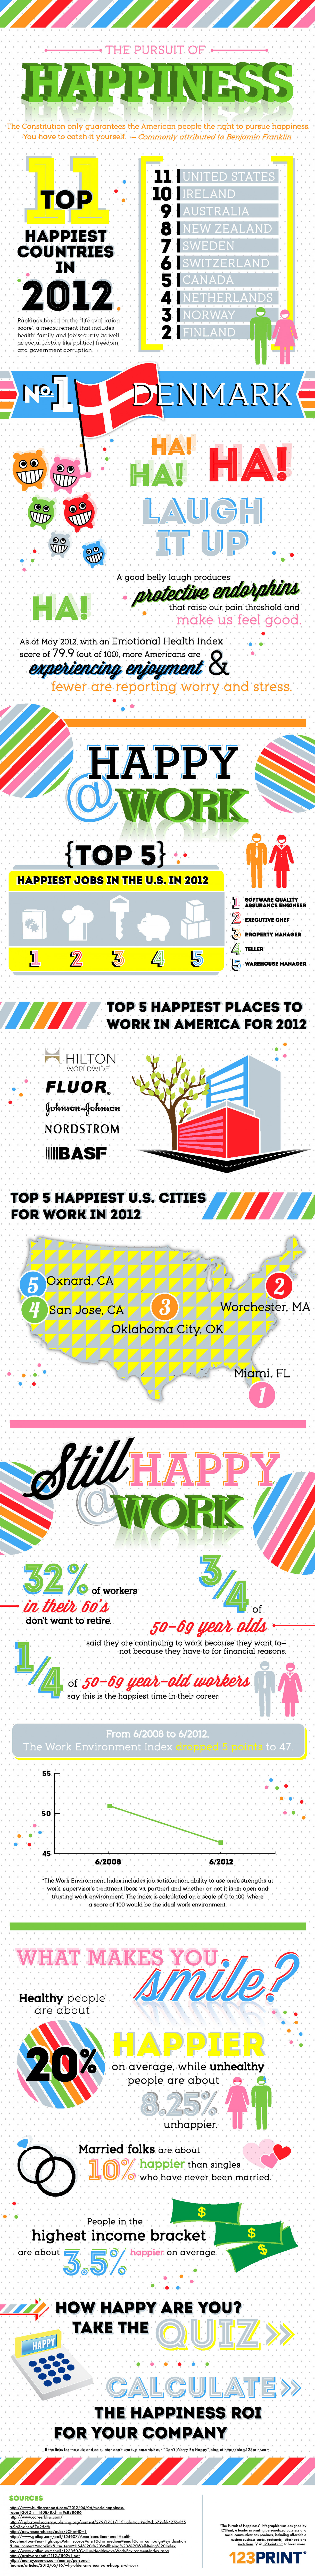 The Pursuit of Happiness Infographic